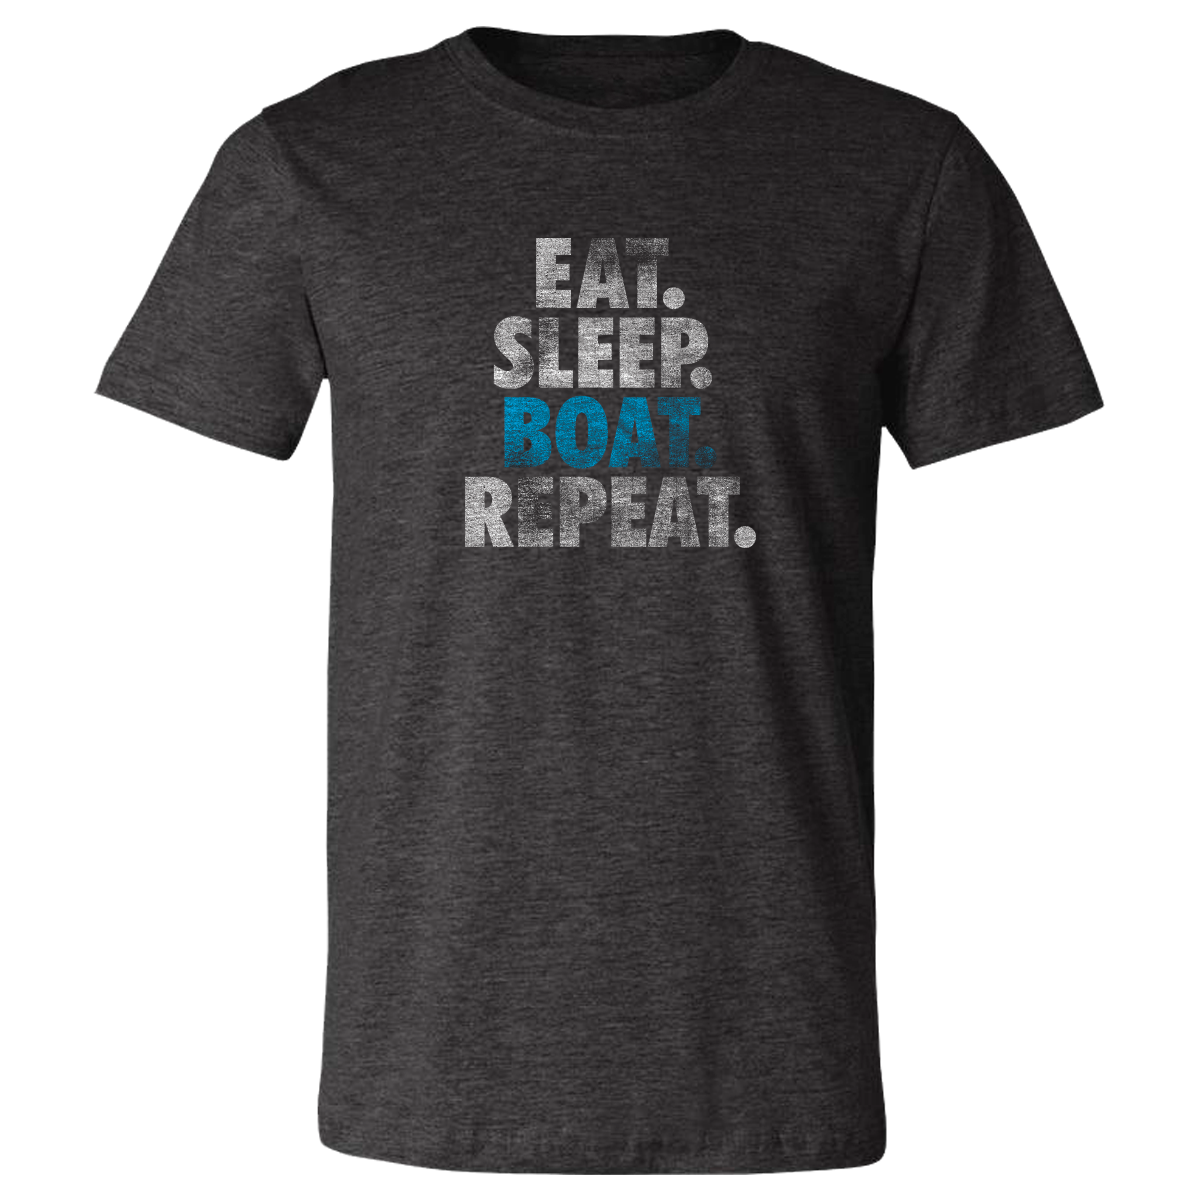 Eat, Sleep, Boat, Repeat - Vintage Soft Unisex T Shirt